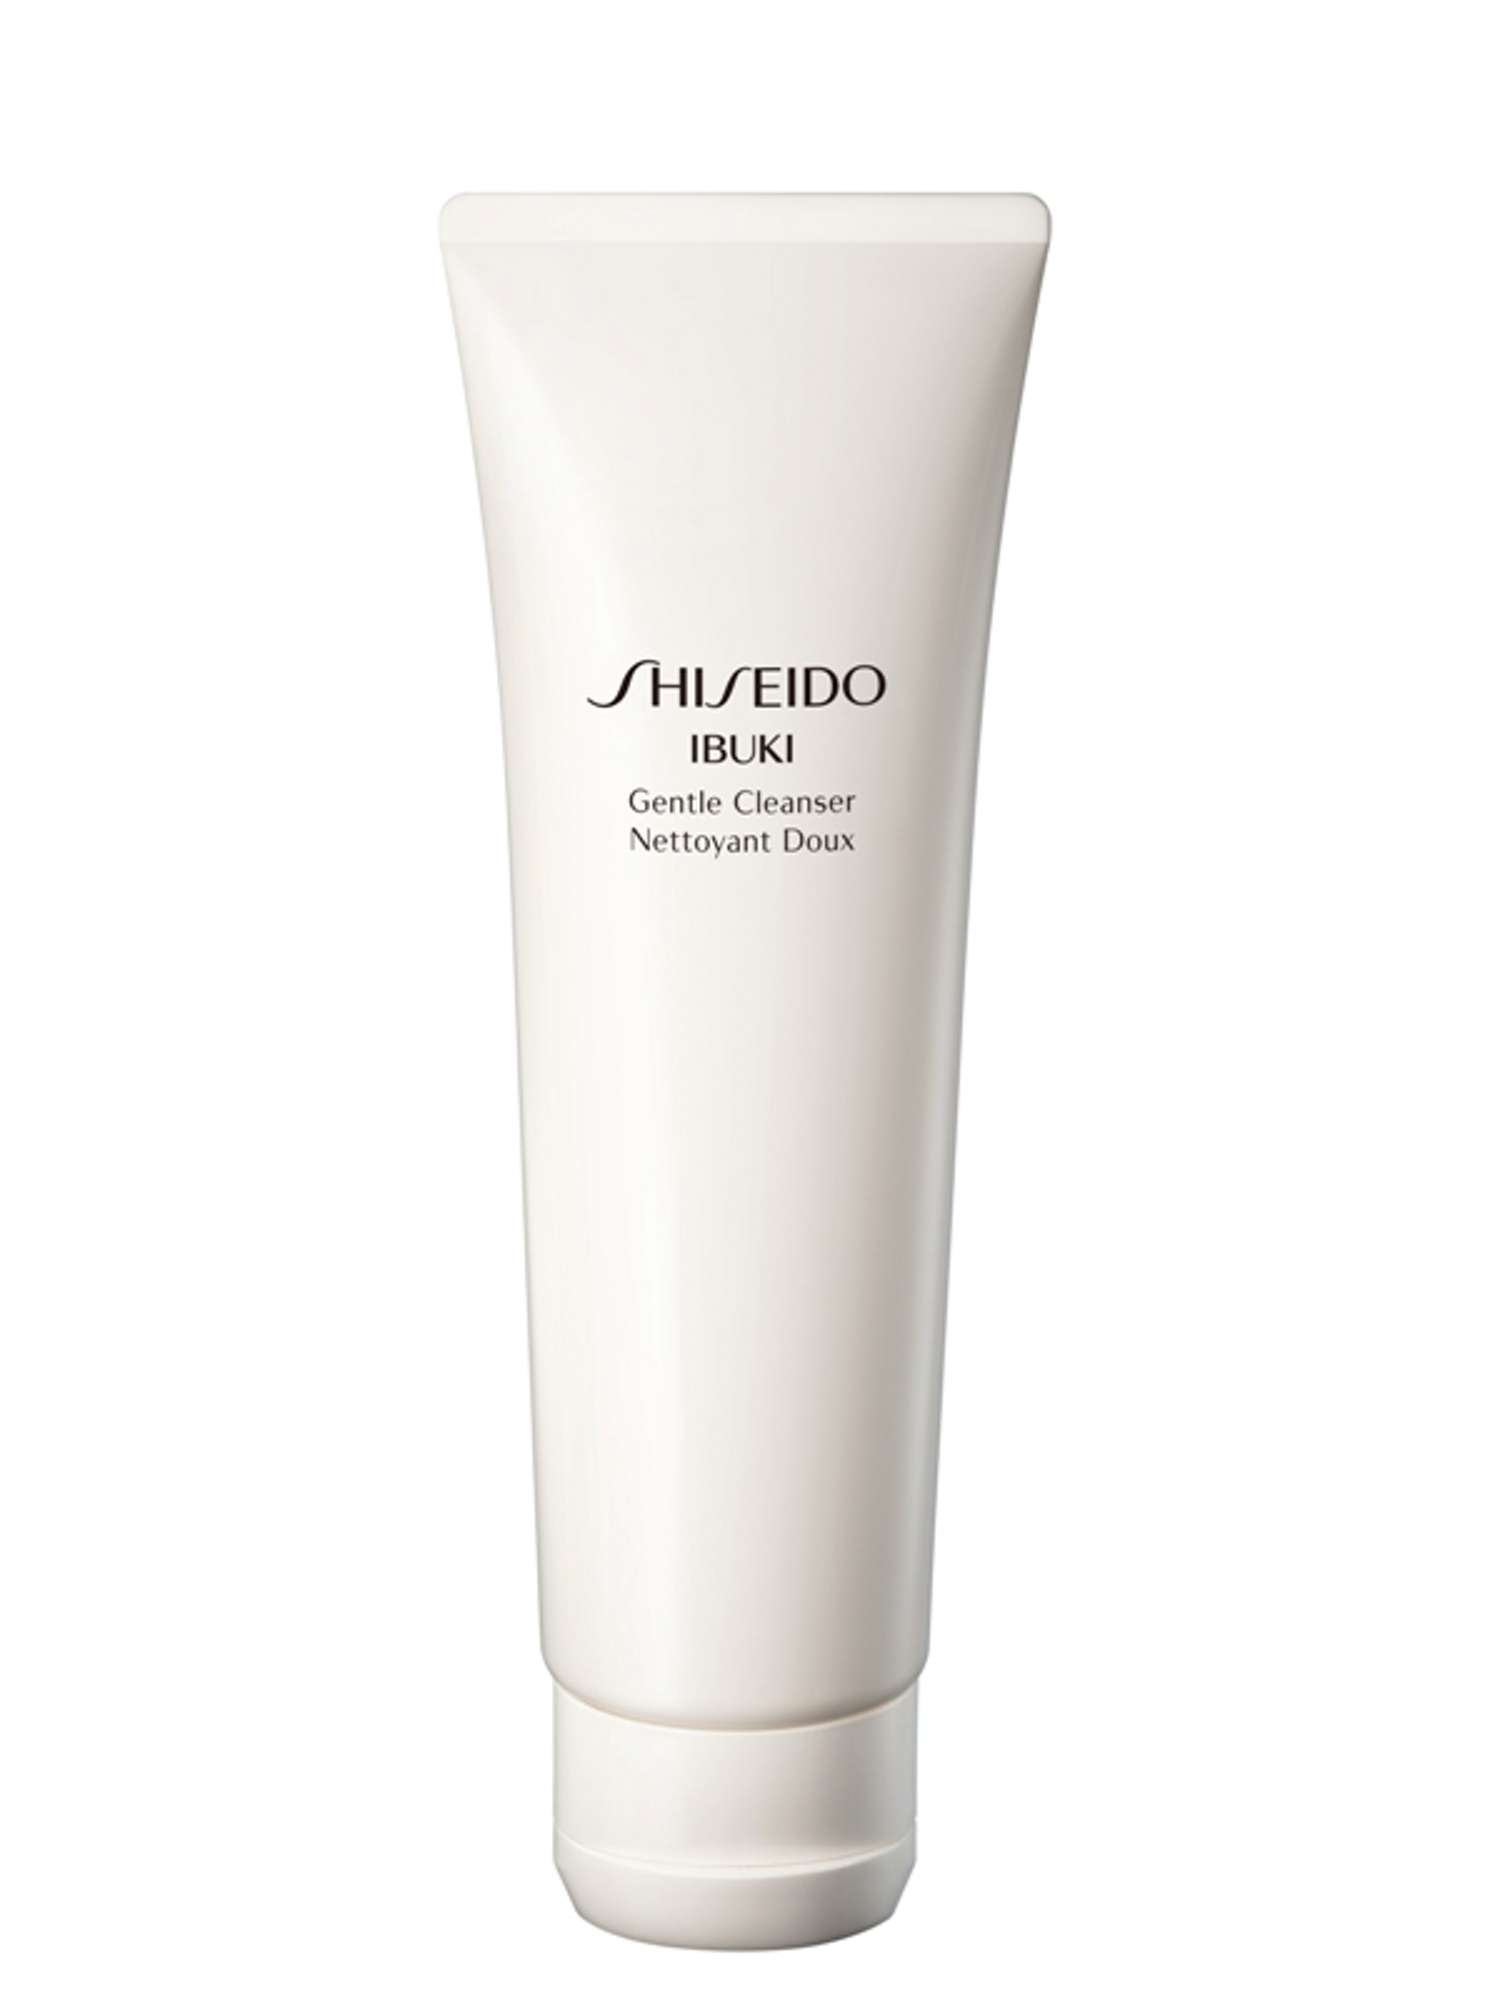 Benefiance Extra Creamy Cleansing Foam by Shiseido #7